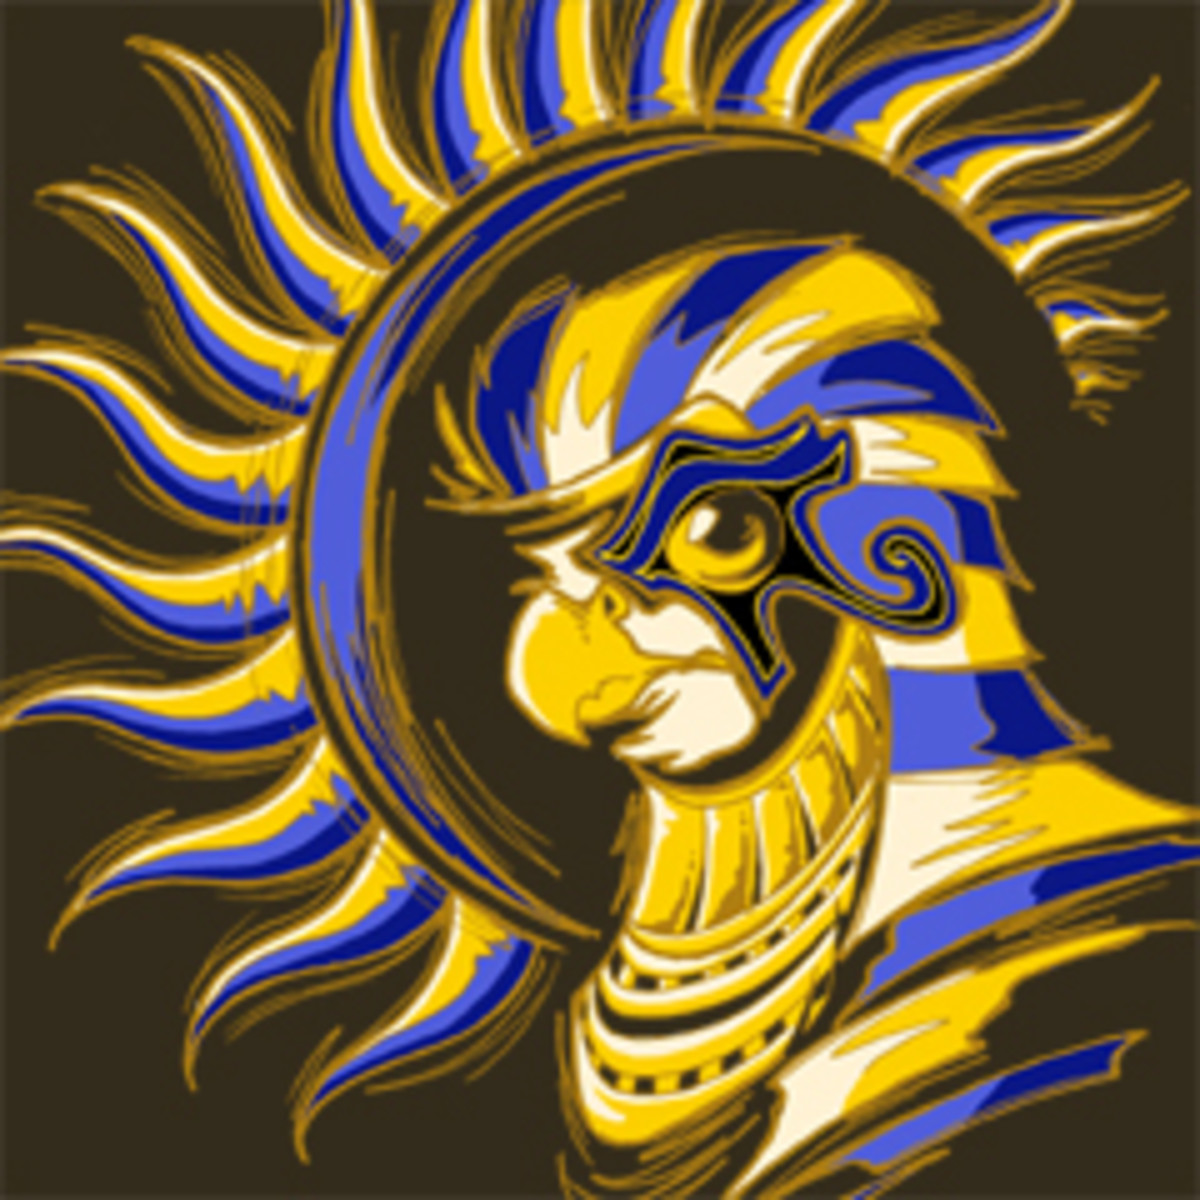 Egyptian Sun God, Re